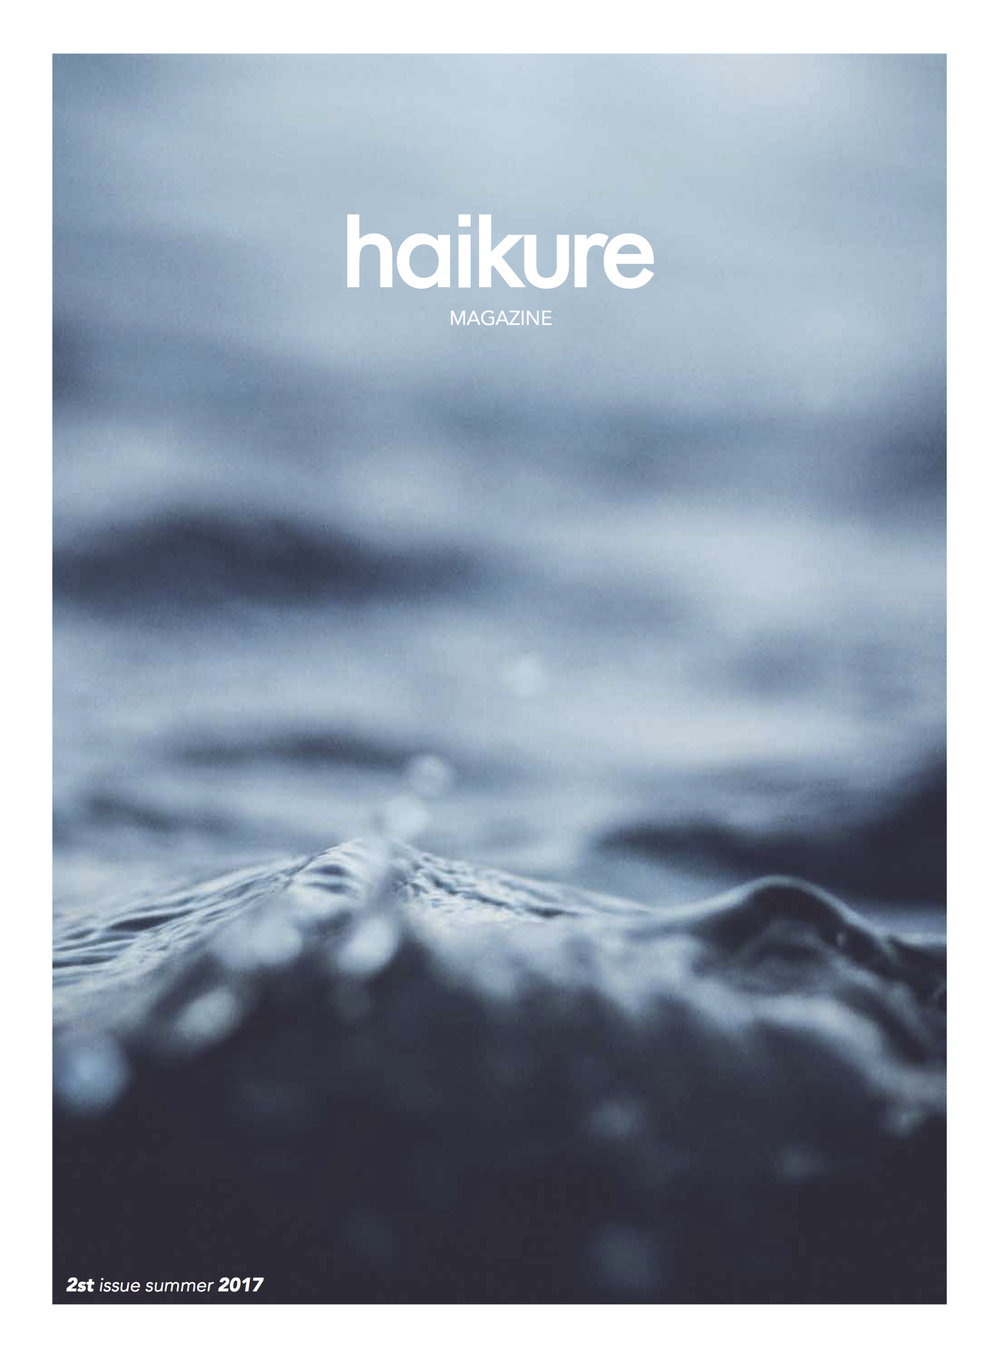 Haikure Magazine 2st Issue Summer 2017.jpg